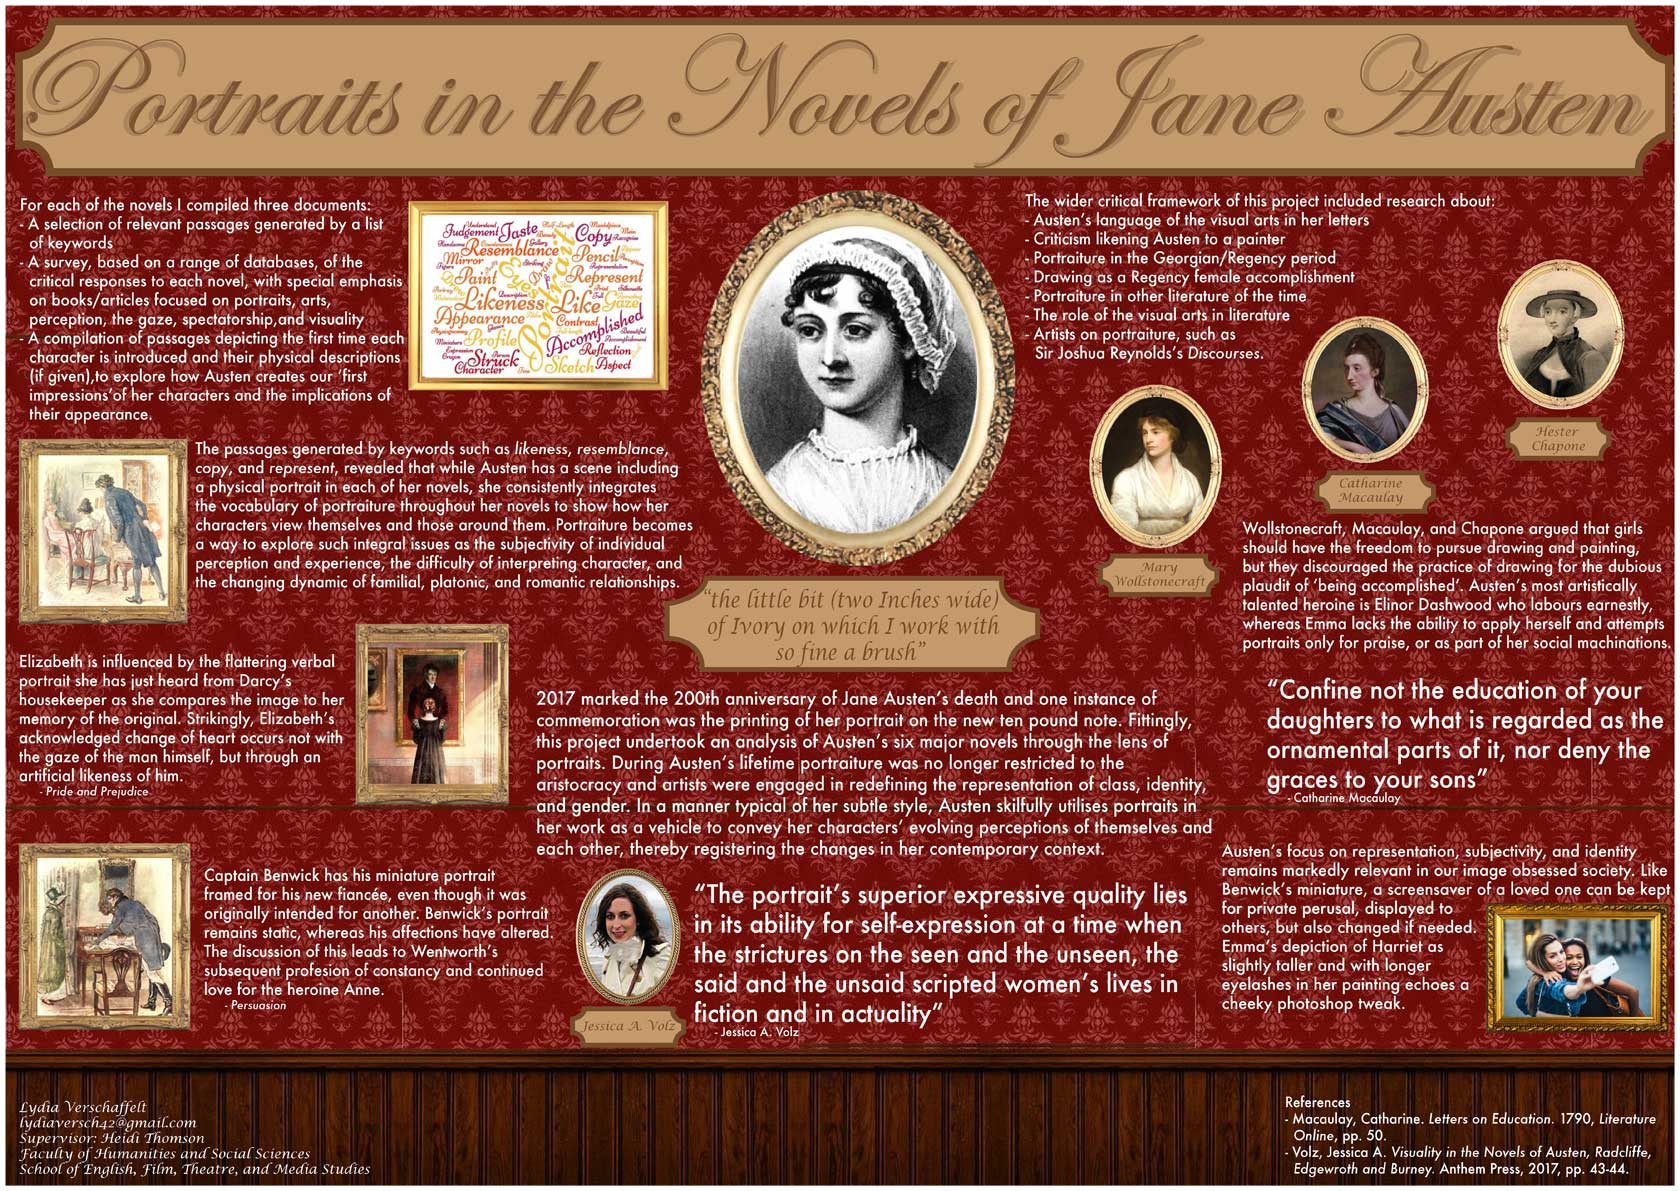 Poster examining the portraits in the novels of Jane Austin.